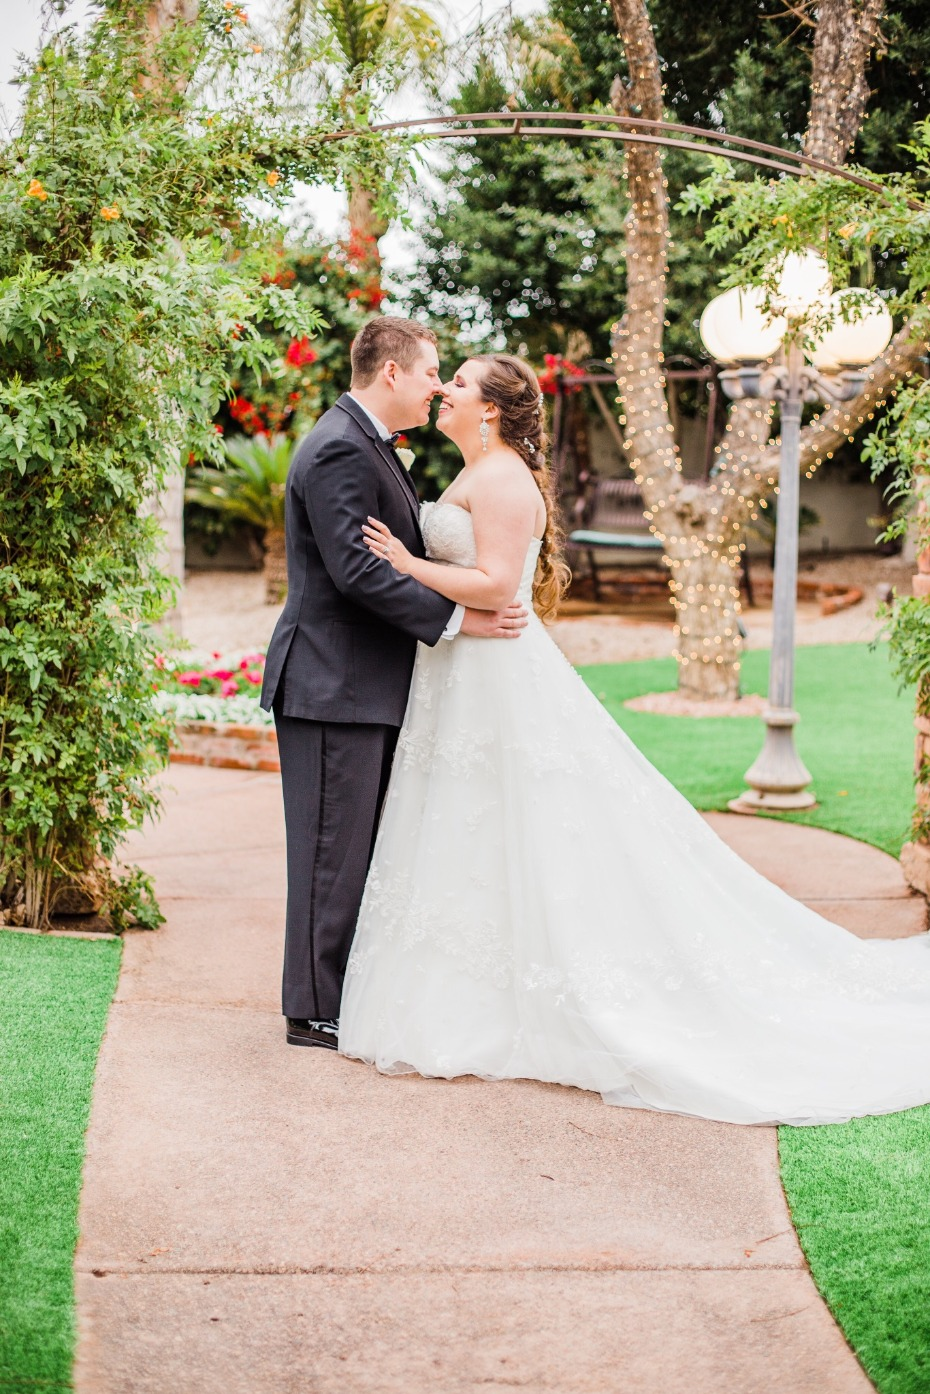 Brenna and Andrew Wedding Photo